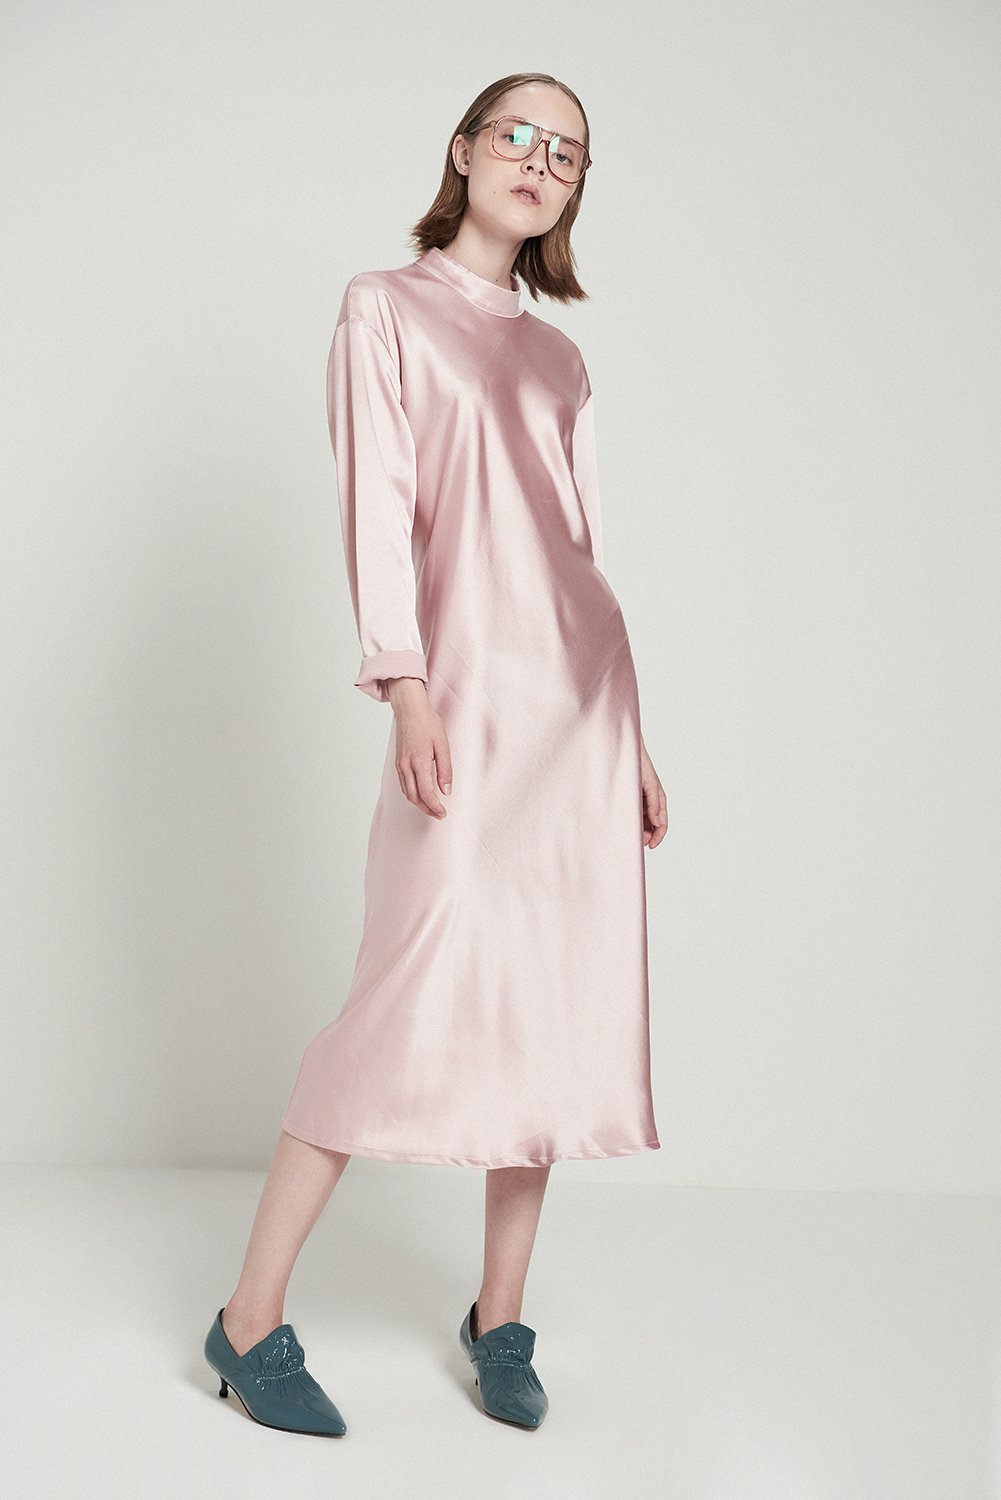 Shiny Turtleneck A-line Dress-Pink, $95